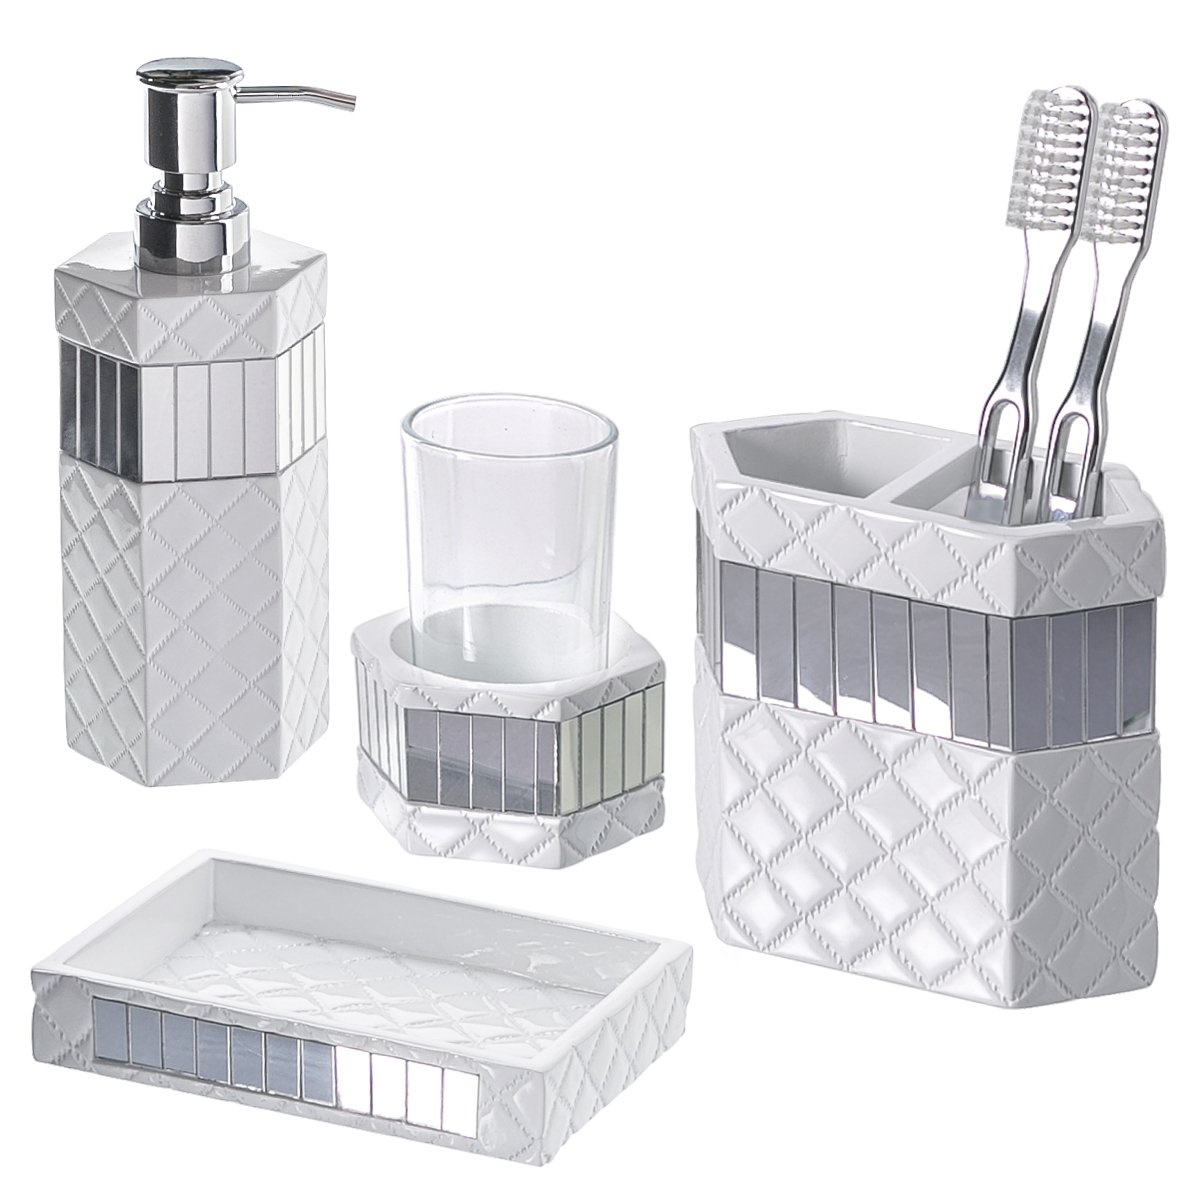 4 piece quilted mirror bathroom accessories set with soap for Bathroom accents